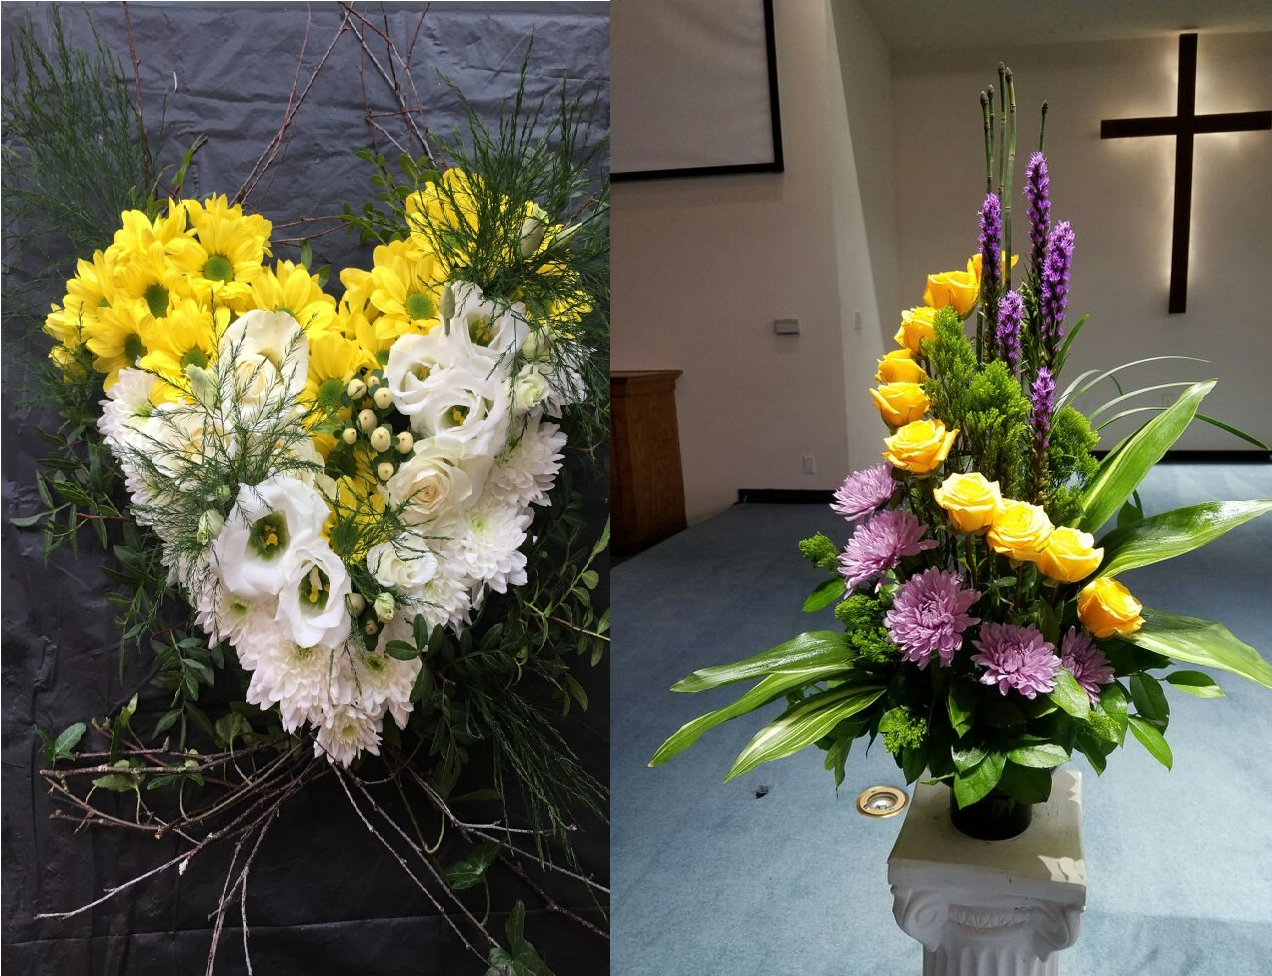 Choosing The Ideal Funeral Flowers In Surrey Just Got Easier